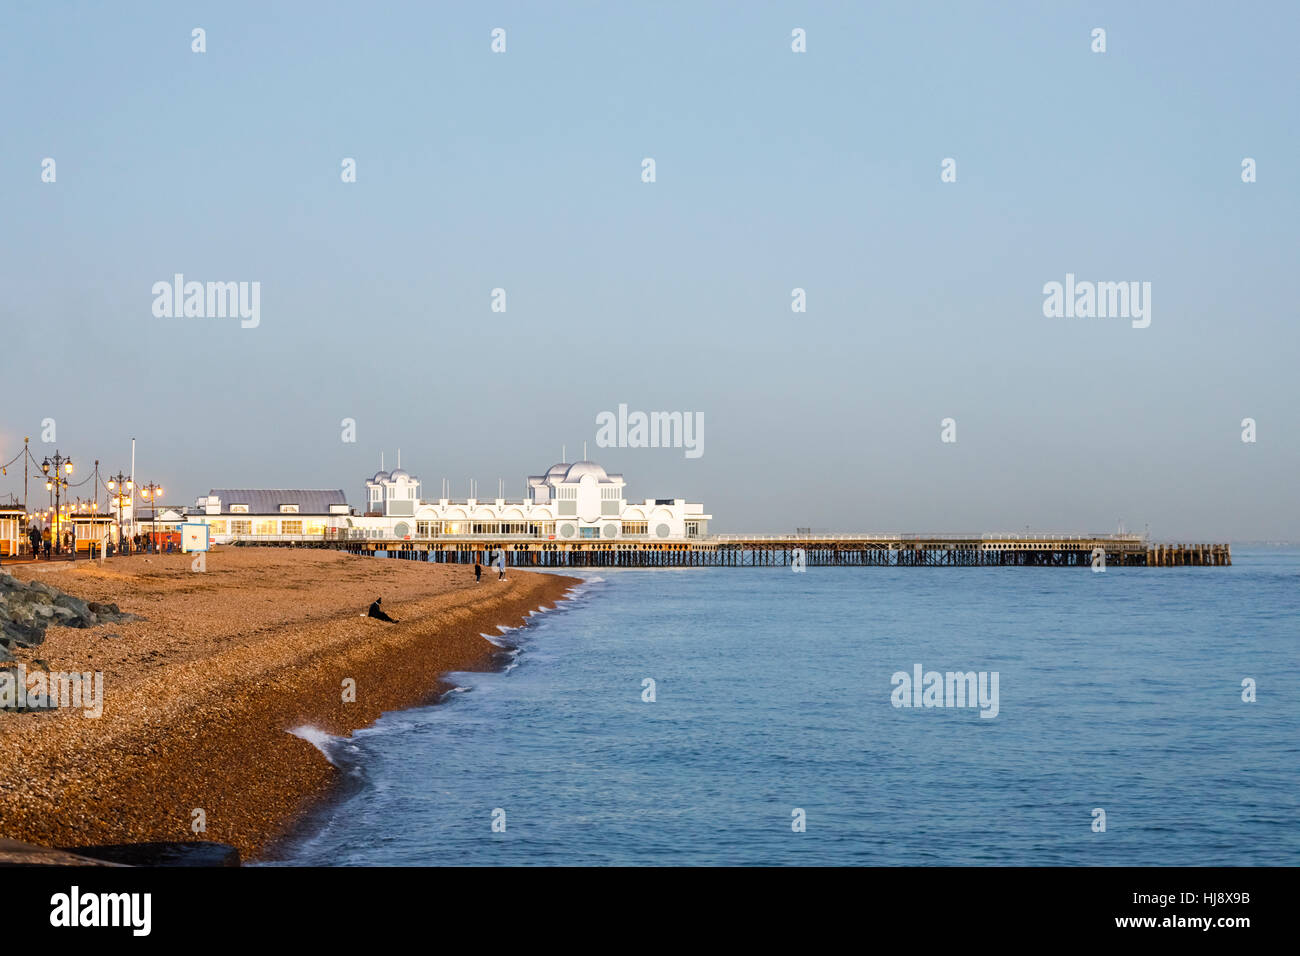 South Parade Pier and the stony beach at Southsea, Portsmouth, Hampshire, southern England in late afternoon/early evening light Stock Photo